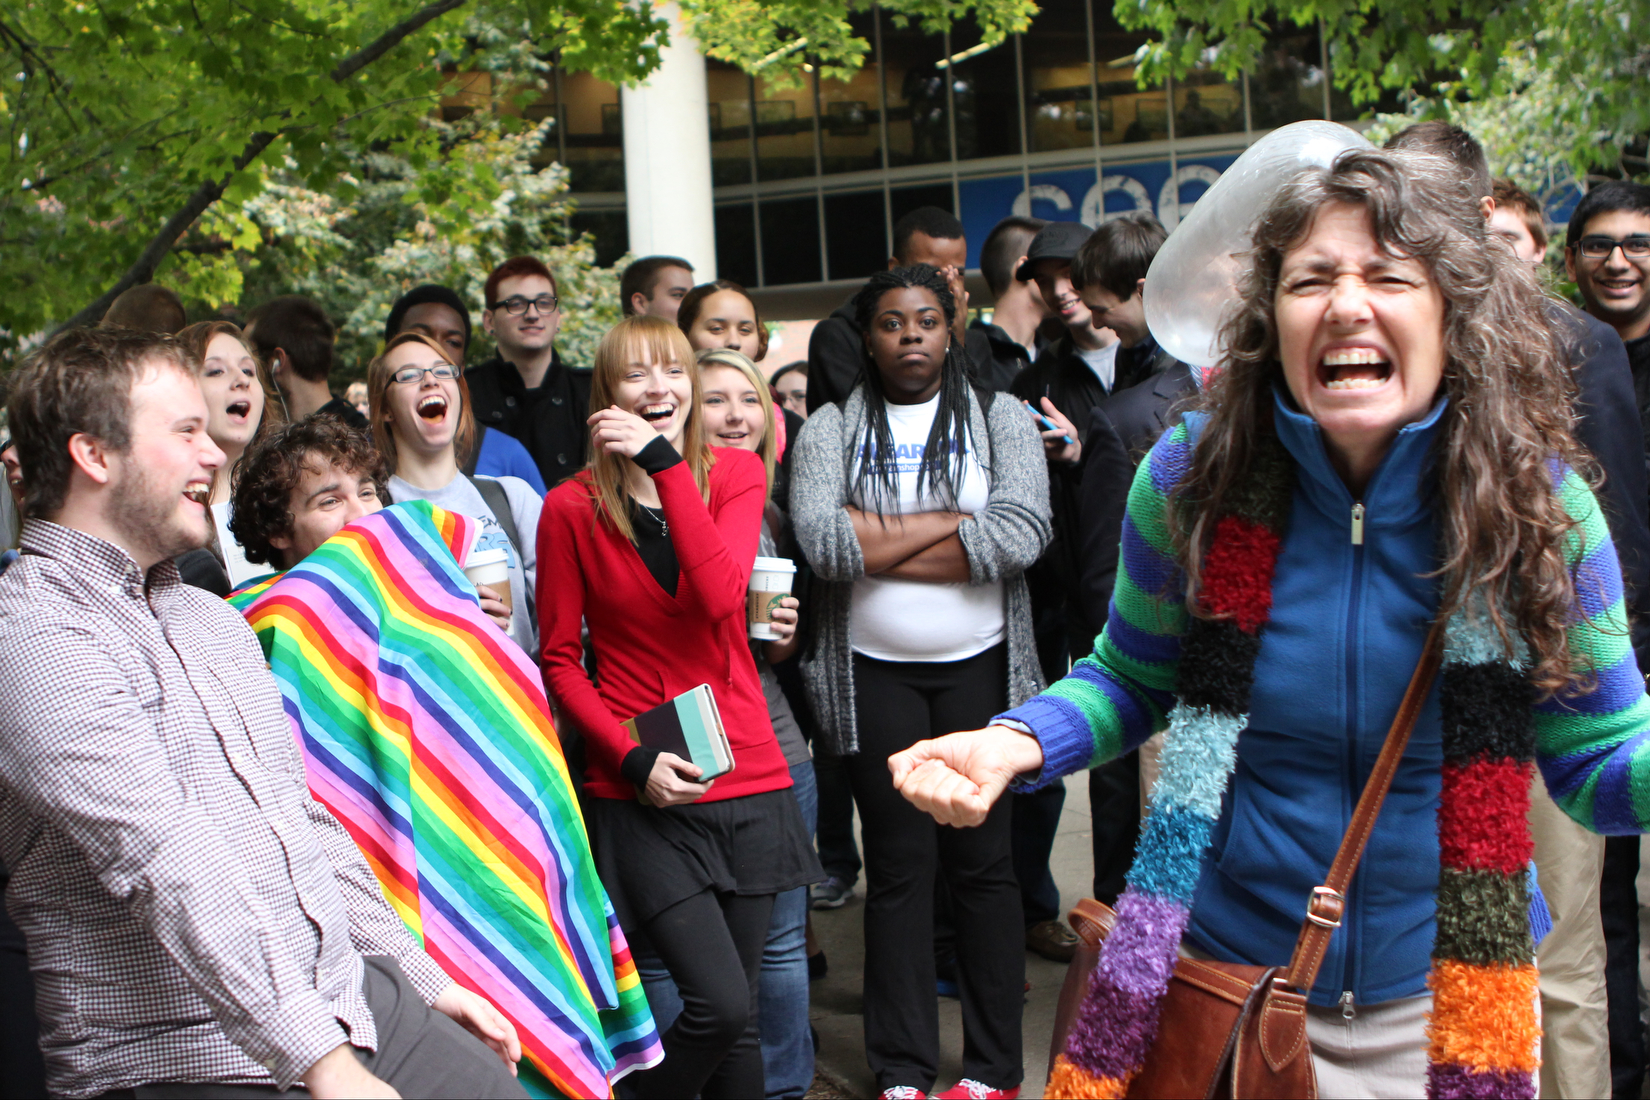 Students, including protesters with the University of Kentucky's LGBT support group the OUTsource, react as an inflated condom collides with Sister Cindy as she delivers a sermon on campus that condemns all sex practices that are not between a married man and woman for the purpose of procreation.